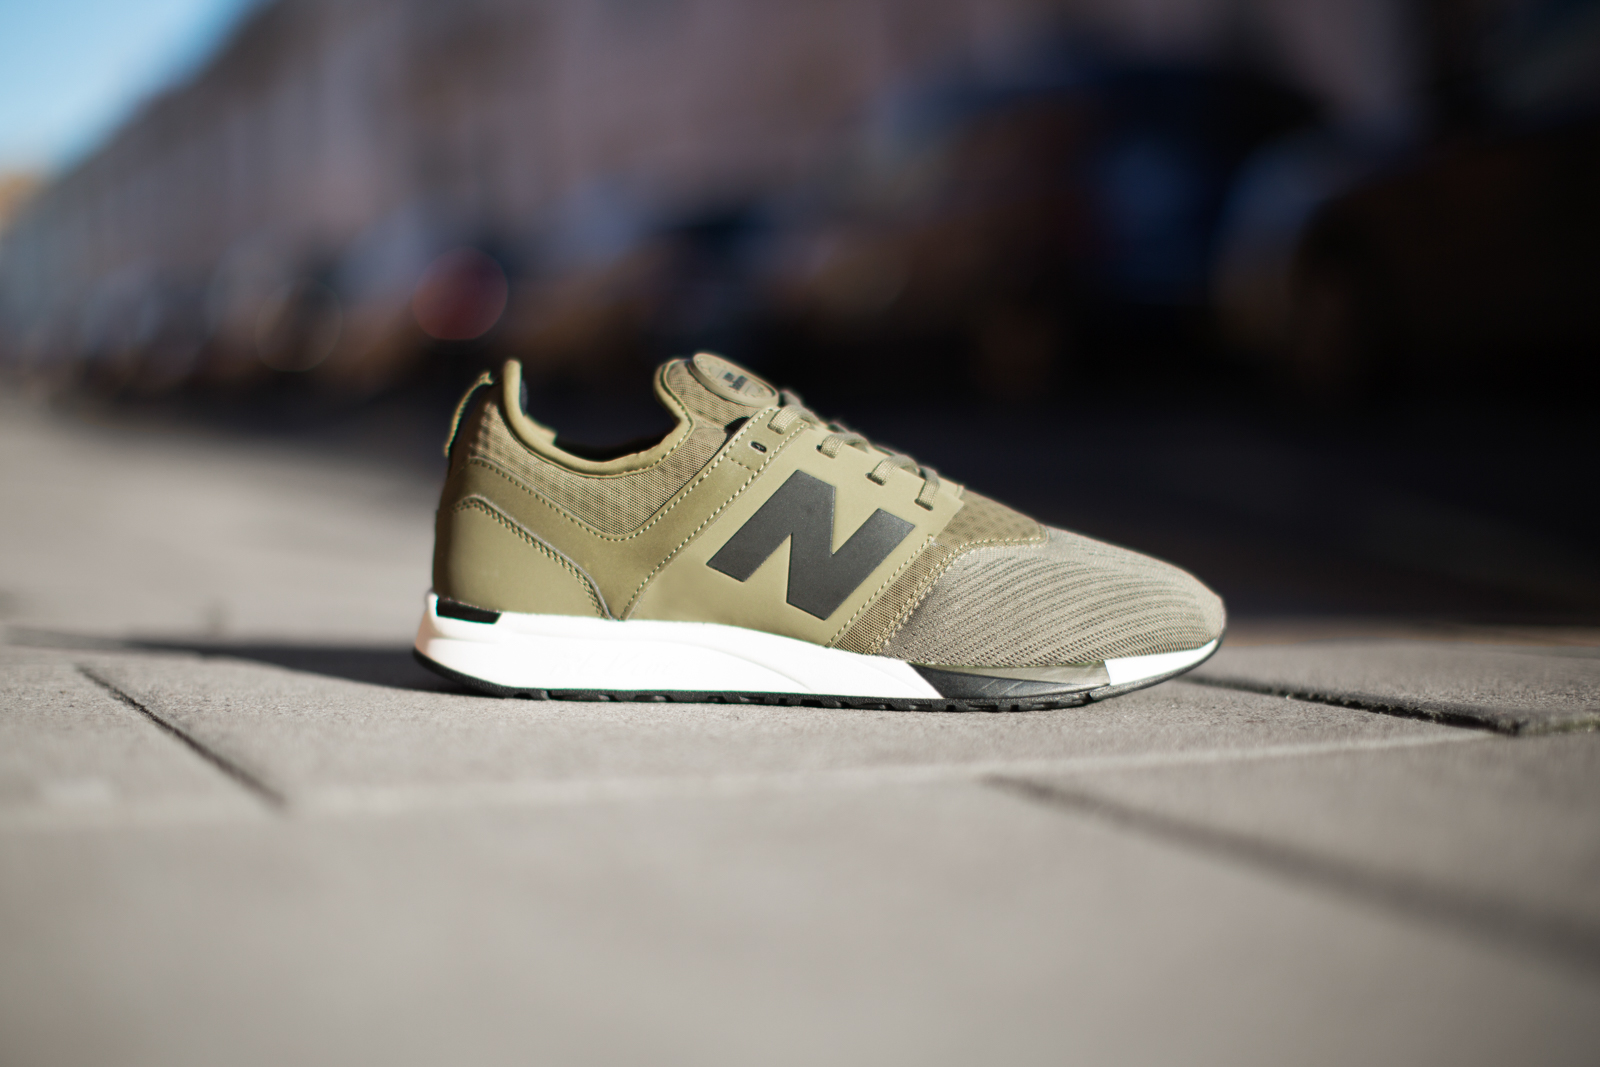 New Balance 247 Luxe Svart Uk rMF4ZUo7g